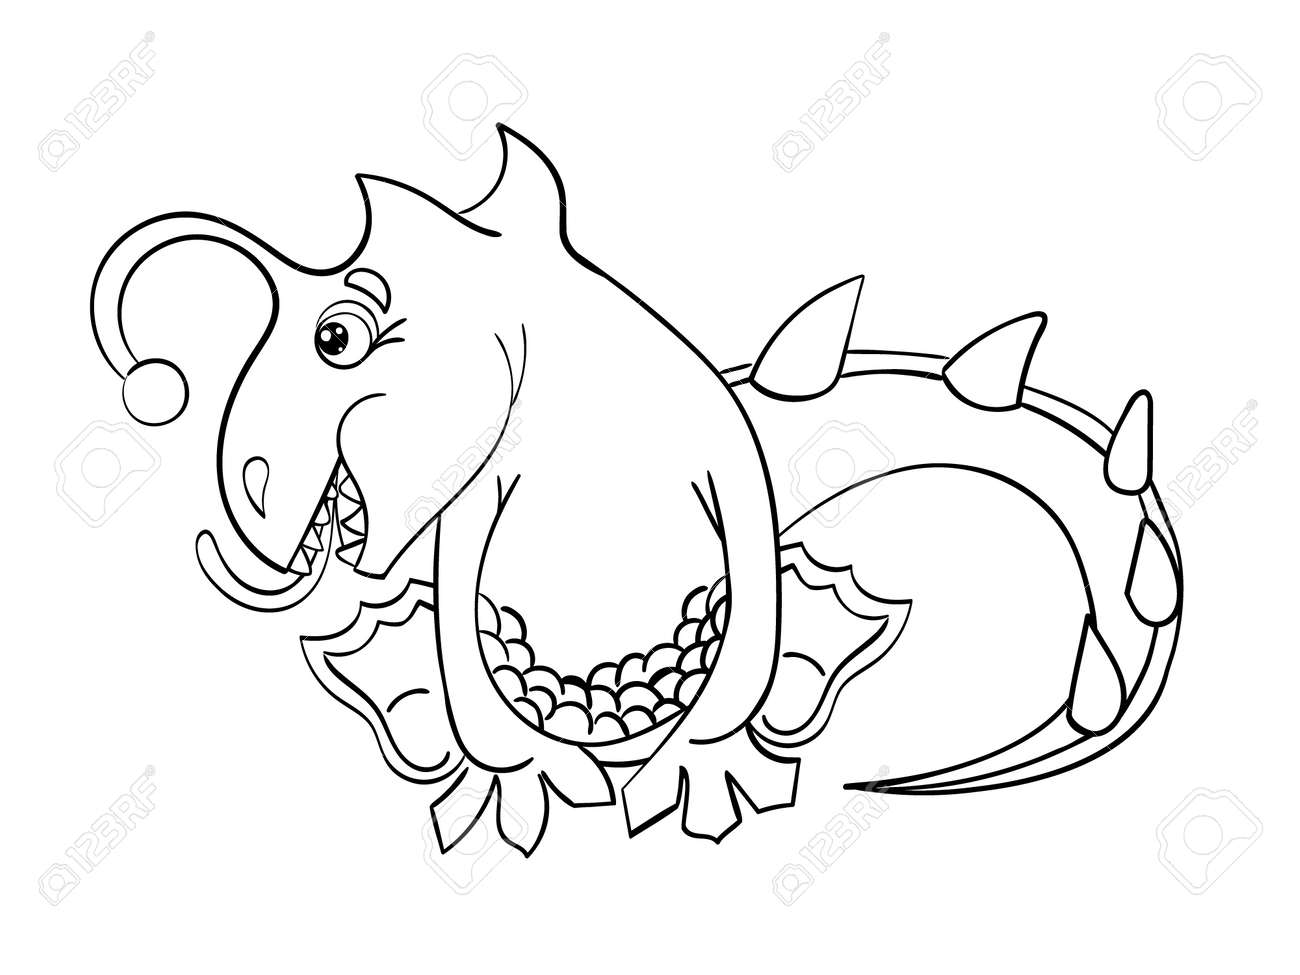 Coloring Book Without Color Dragon Isolated On White Background ...